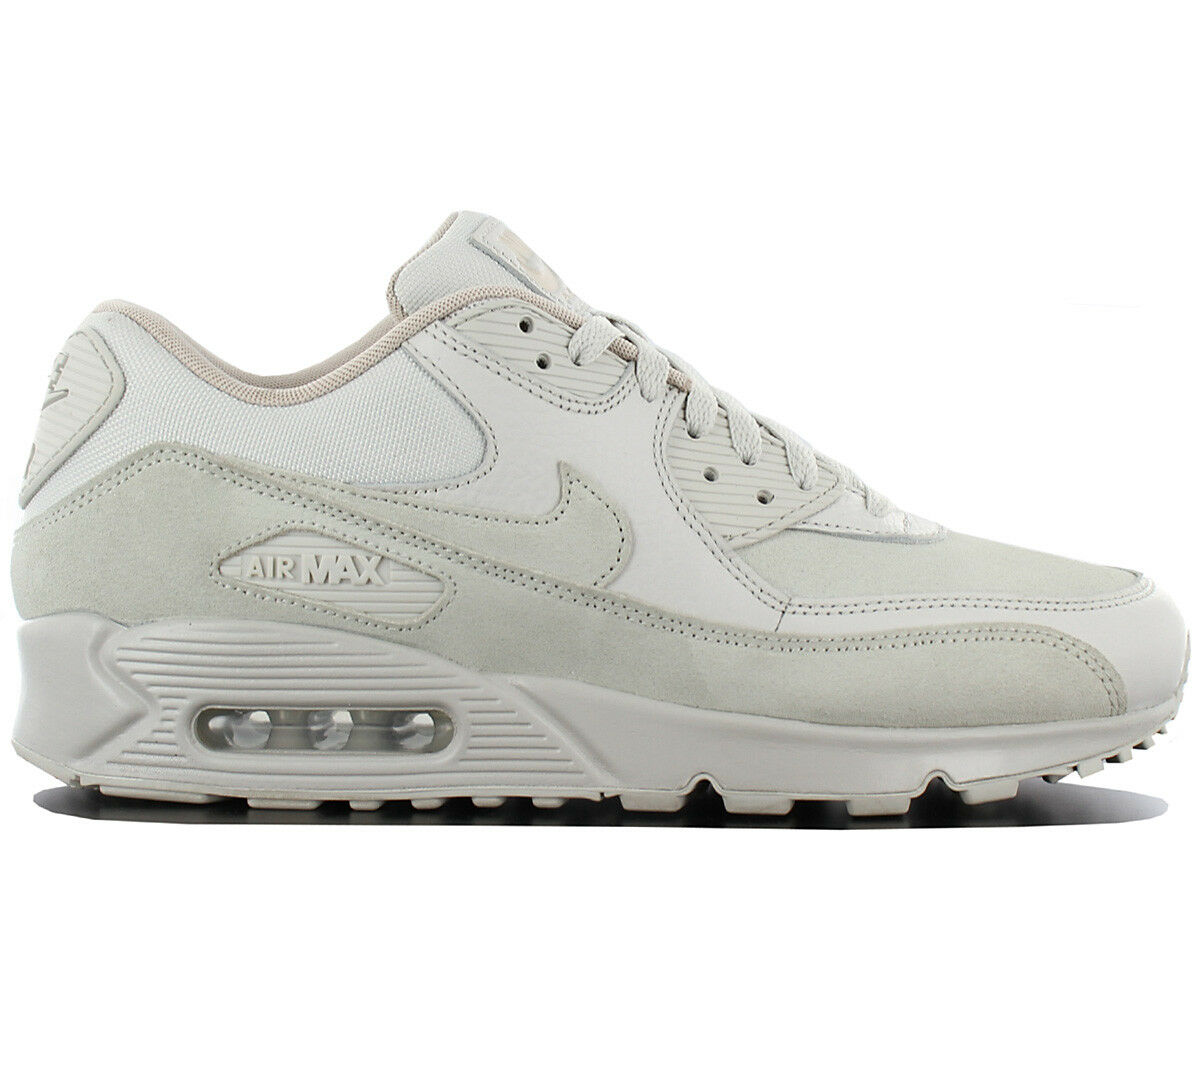 Nike Air Max 90 Leather Premium Baskets / Chaussures Homme - Light OS -